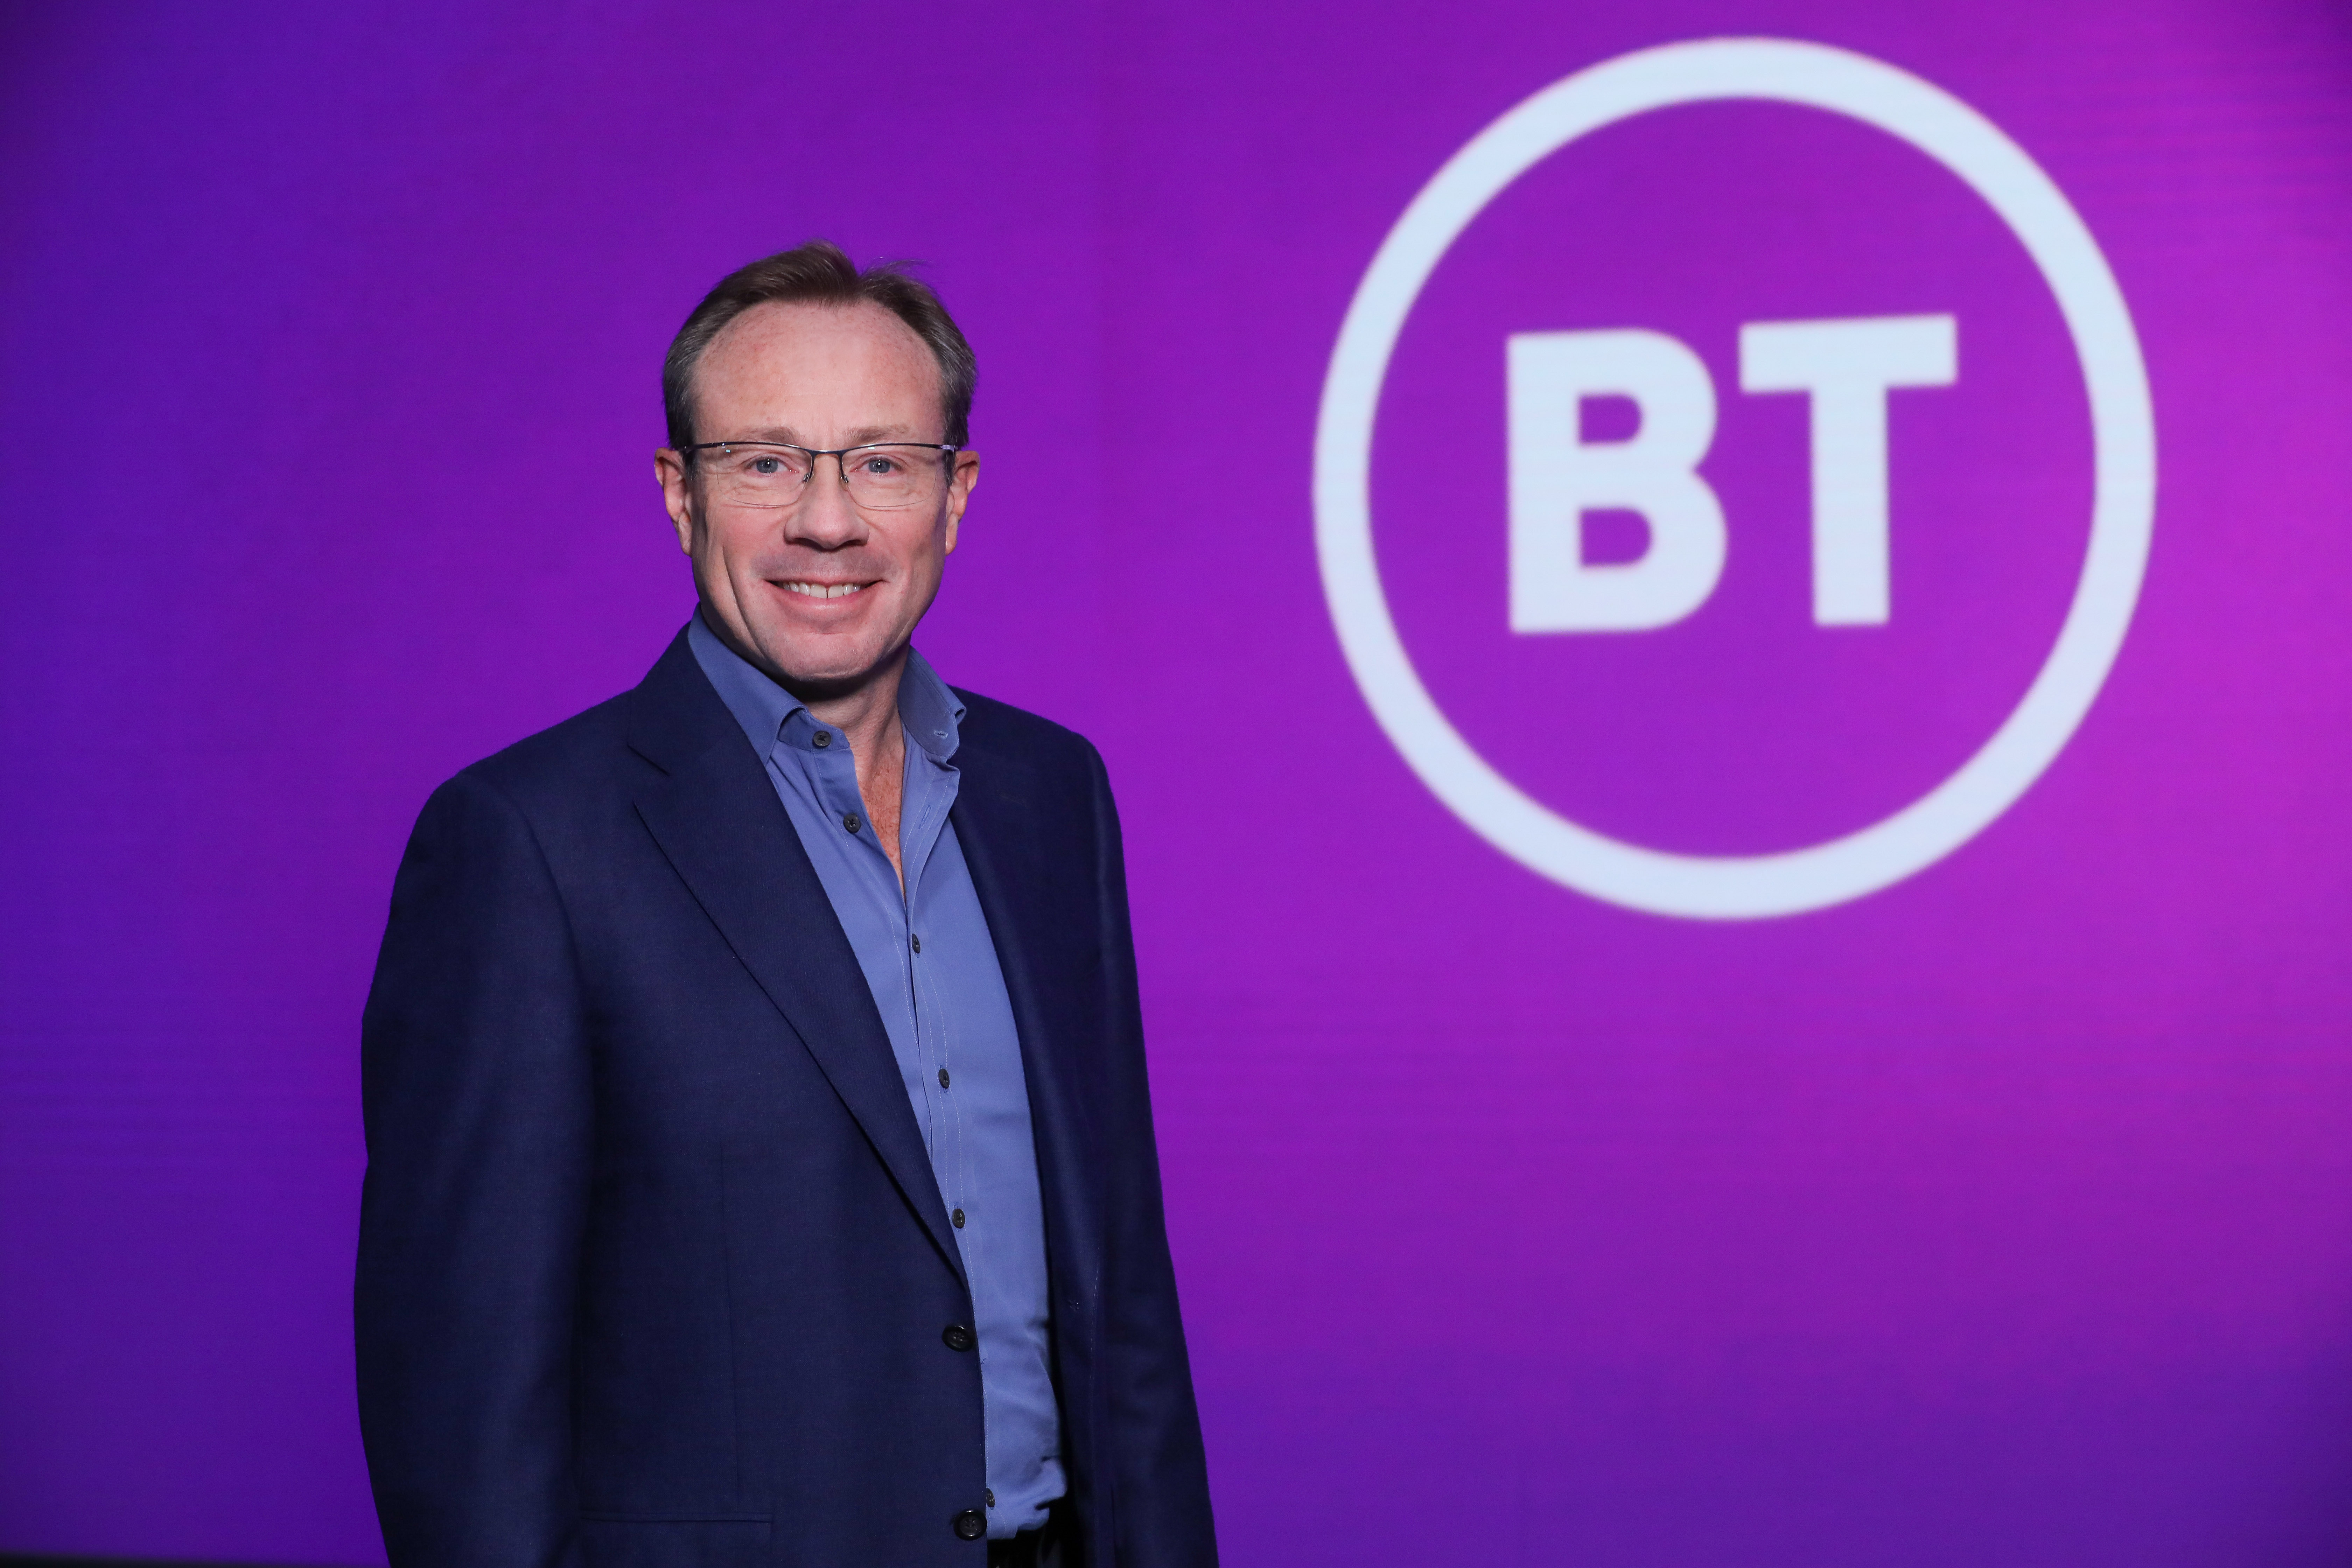 BT's chief executive Philip Jansen